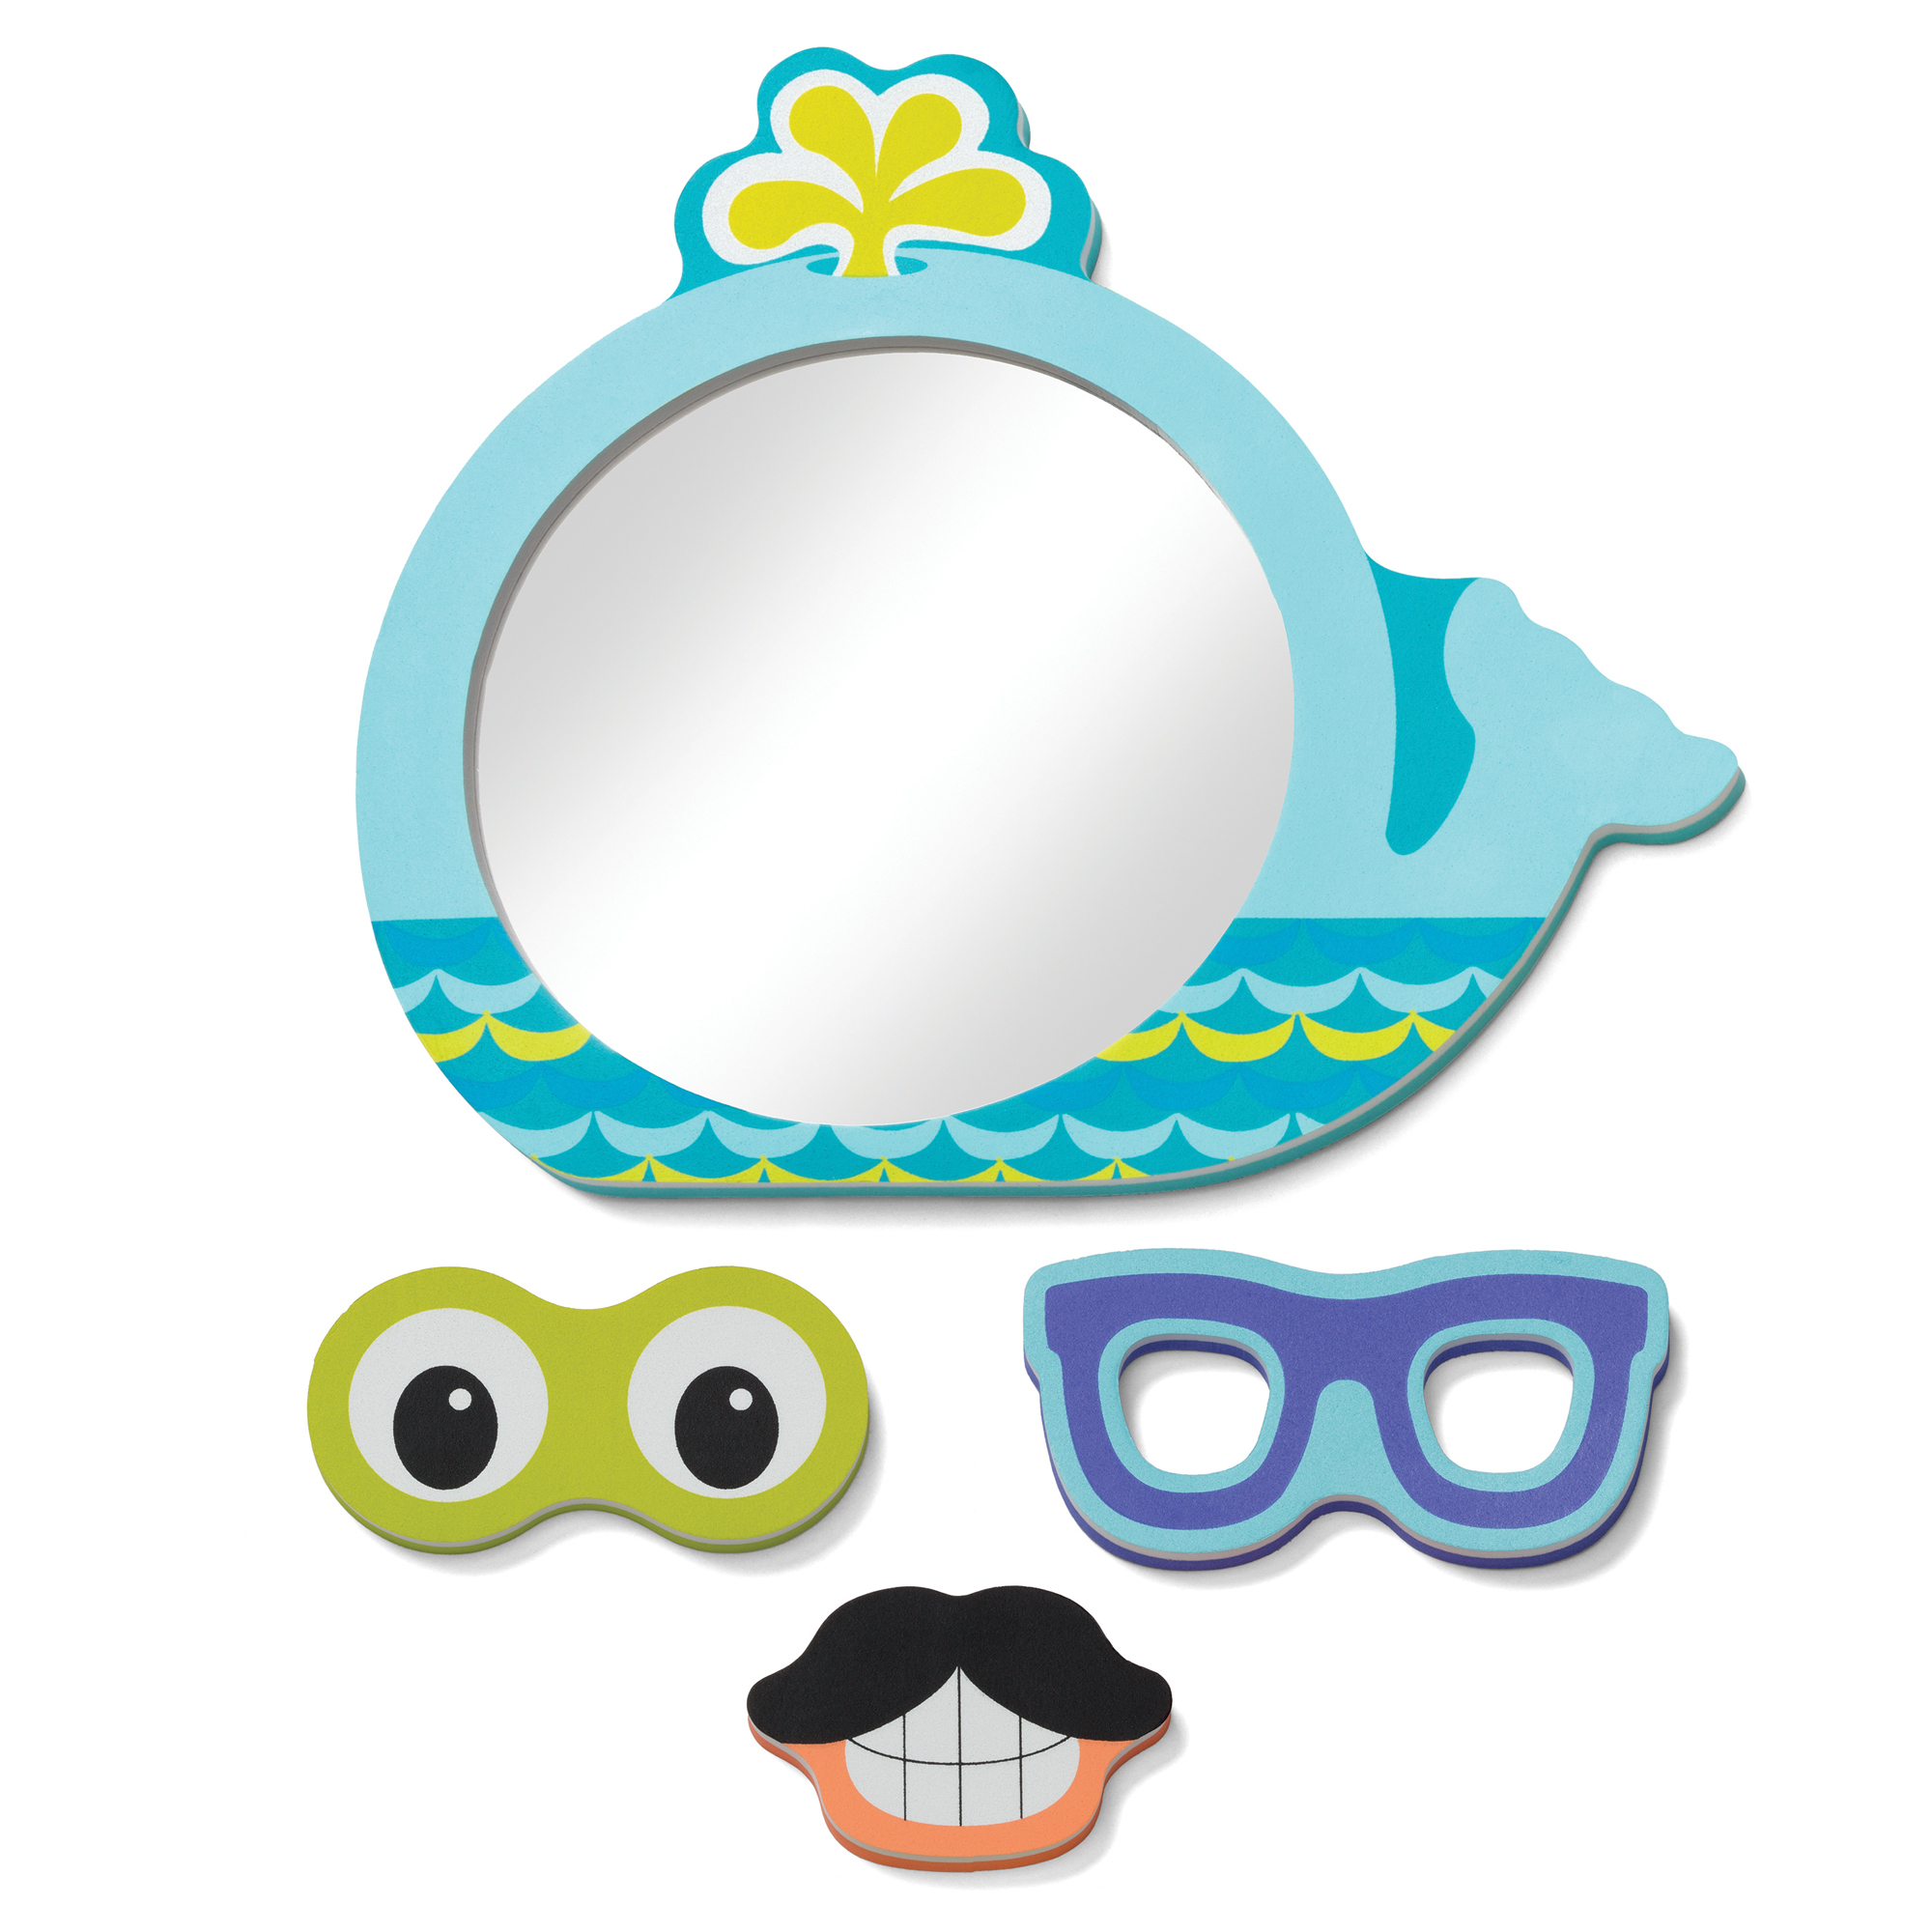 Infantino Funny Faces Bath Mirror by Infantino